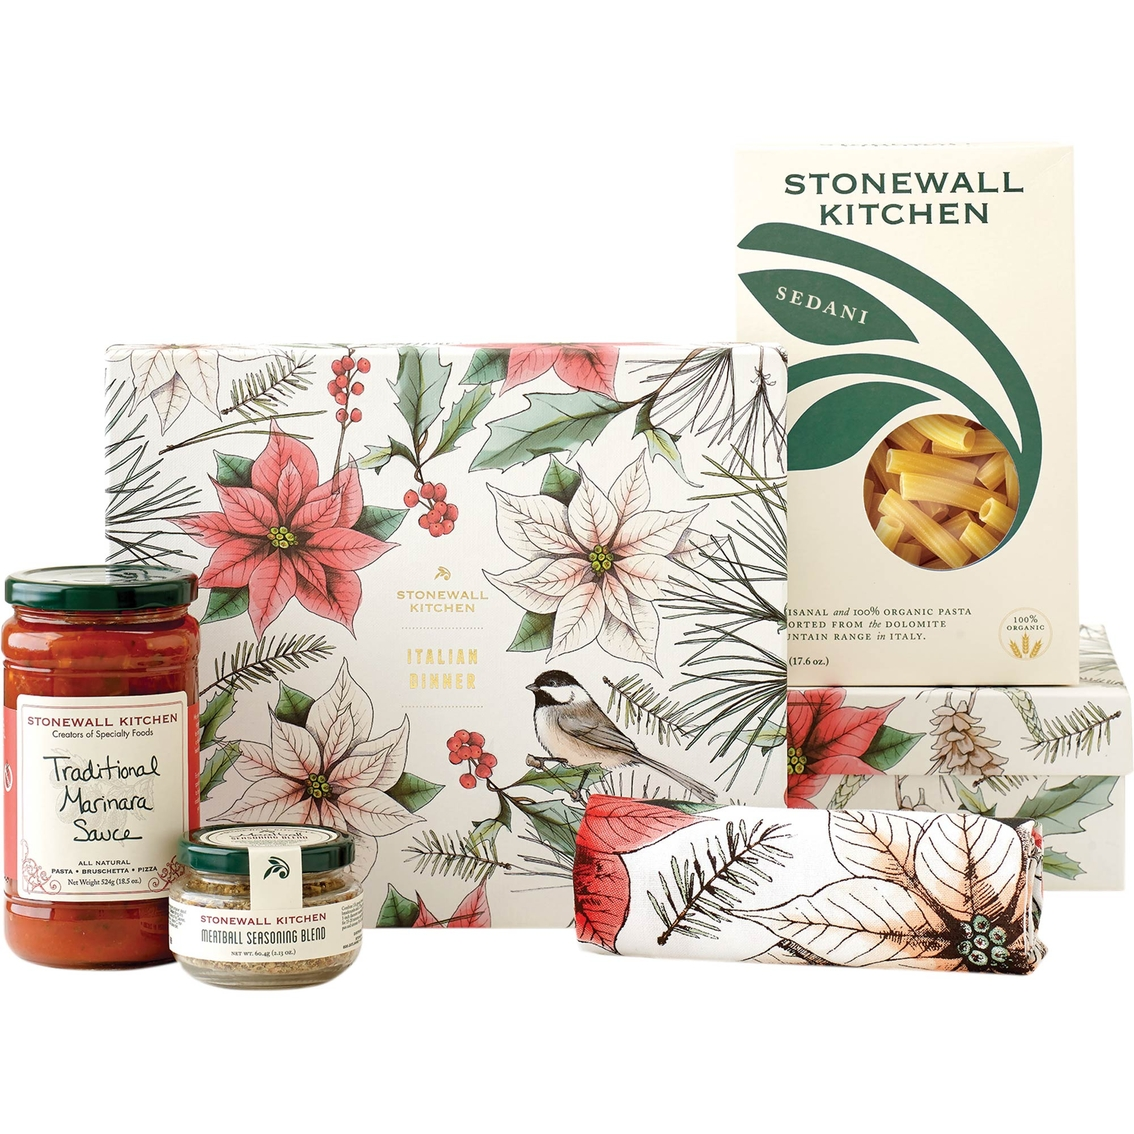 Stonewall kitchen italian dinner gift set gourmet food for Italian kitchen gifts